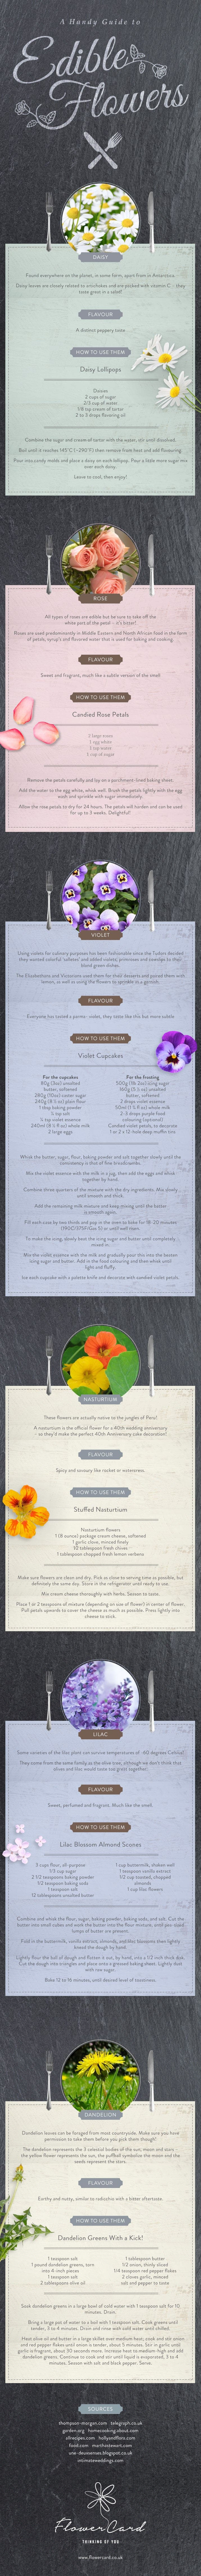 how-to-use-edible-flowers